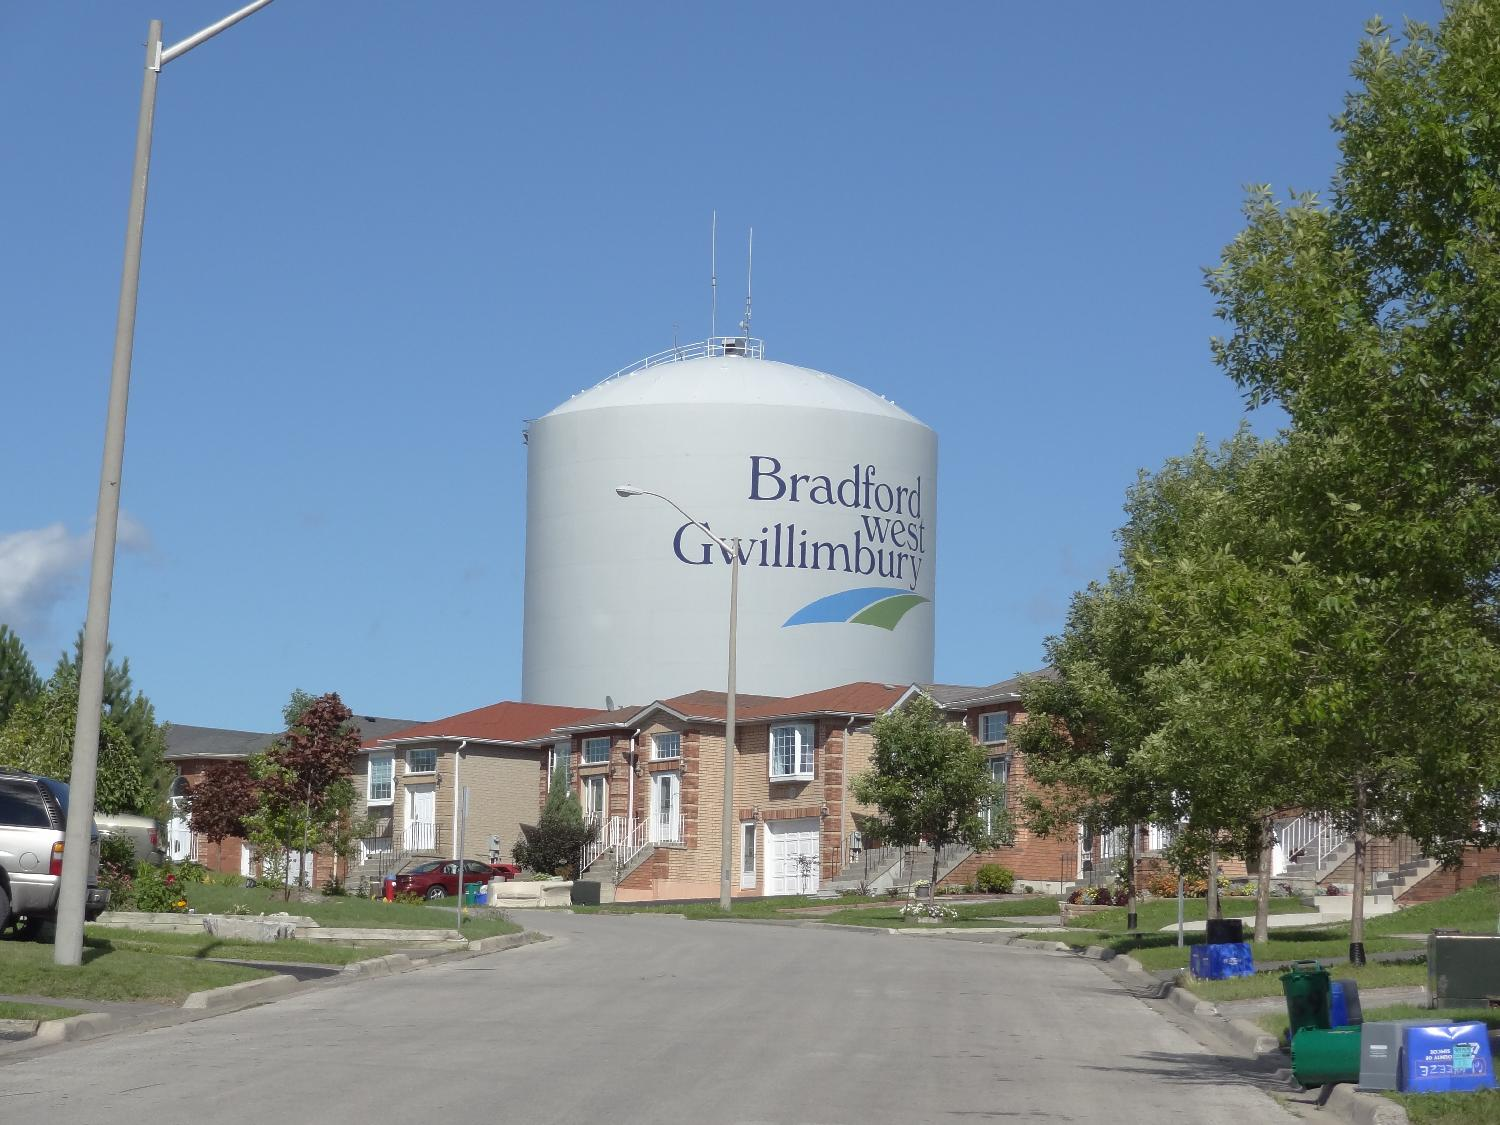 Water Tower in Bradford West Gwillimbury near 10 Sideroad and Holland Street.